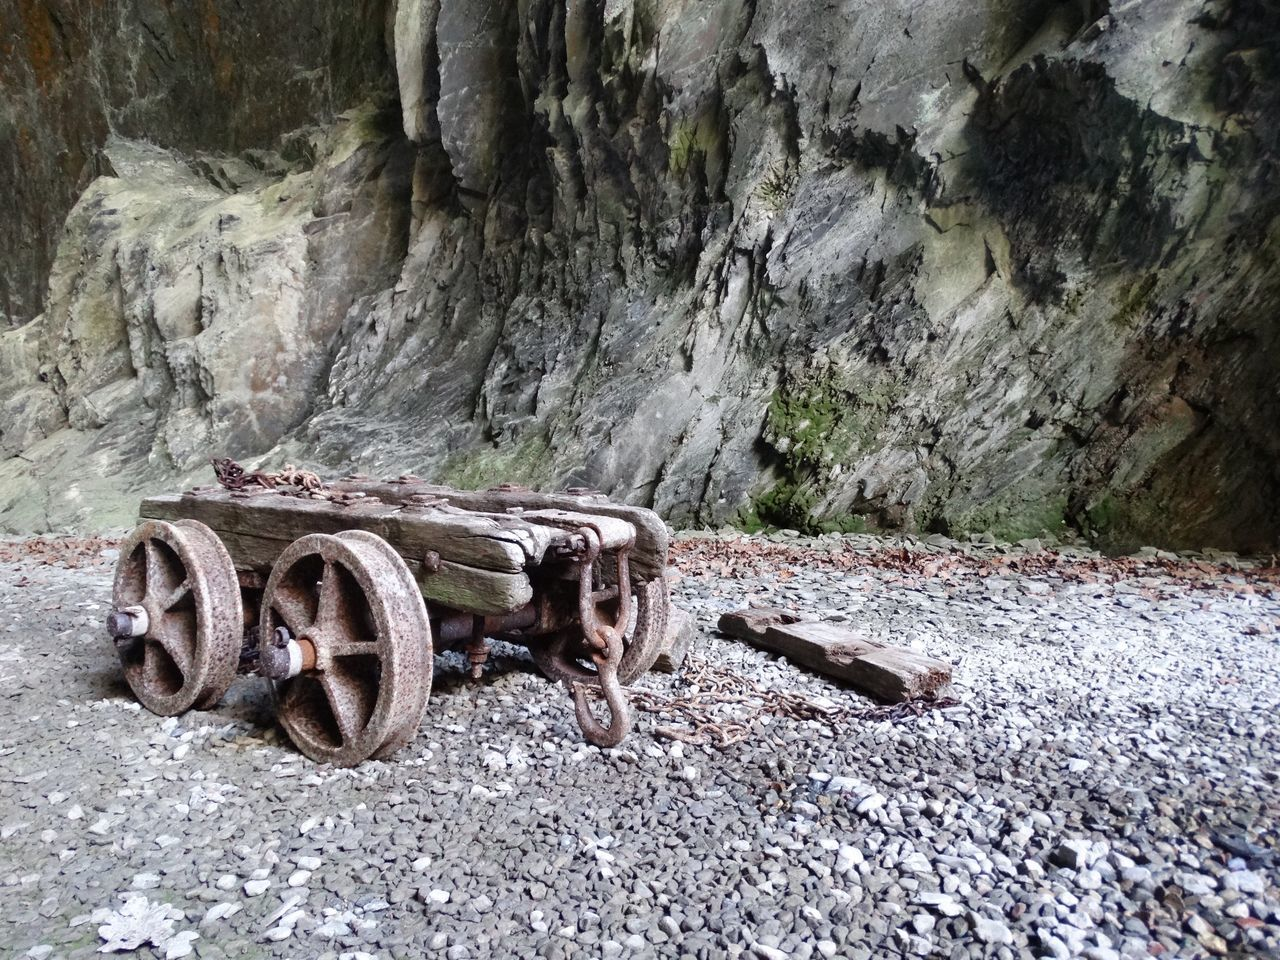 Small mining cart. No People Mining Truck Cart Cavern Cave Caverns Caves Rocks Rocky Mining Equipment Mining Industry Old Mine Old Historic History Mine Cart Mine Truck Wheels Stones Darkness And Light